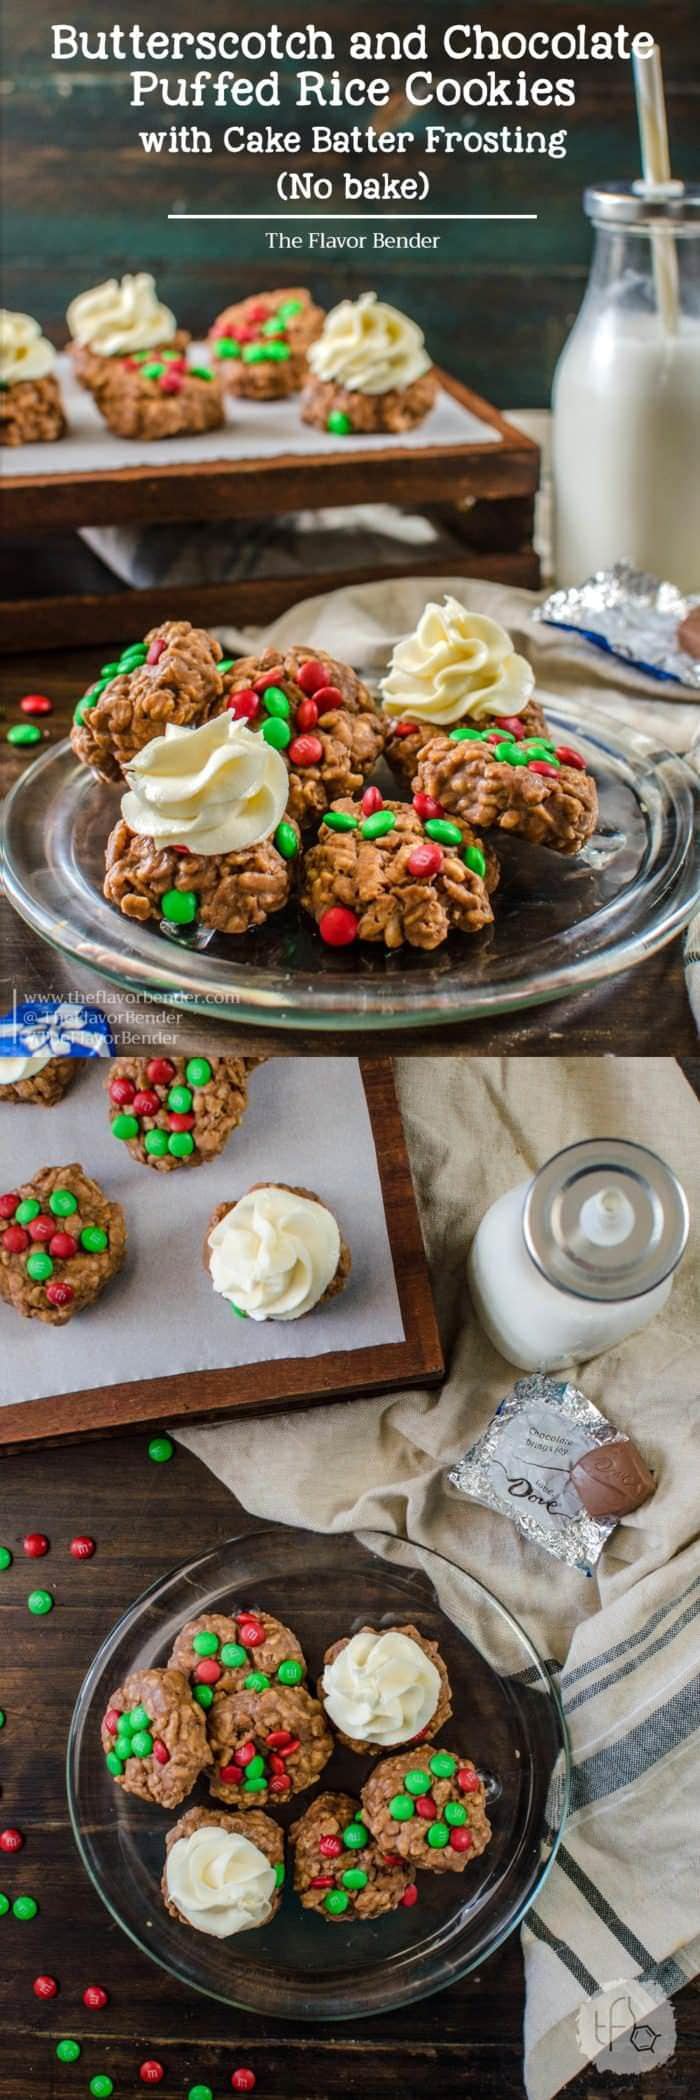 M&M's Butterscotch and Chocolate Puffed Rice Cookies - These no bake holiday cookies are so easy to make and super addictive! Butterscotch Chocolave M&Ms Puffed rice cookies with a creamy Cake batter cheesecake frosting.